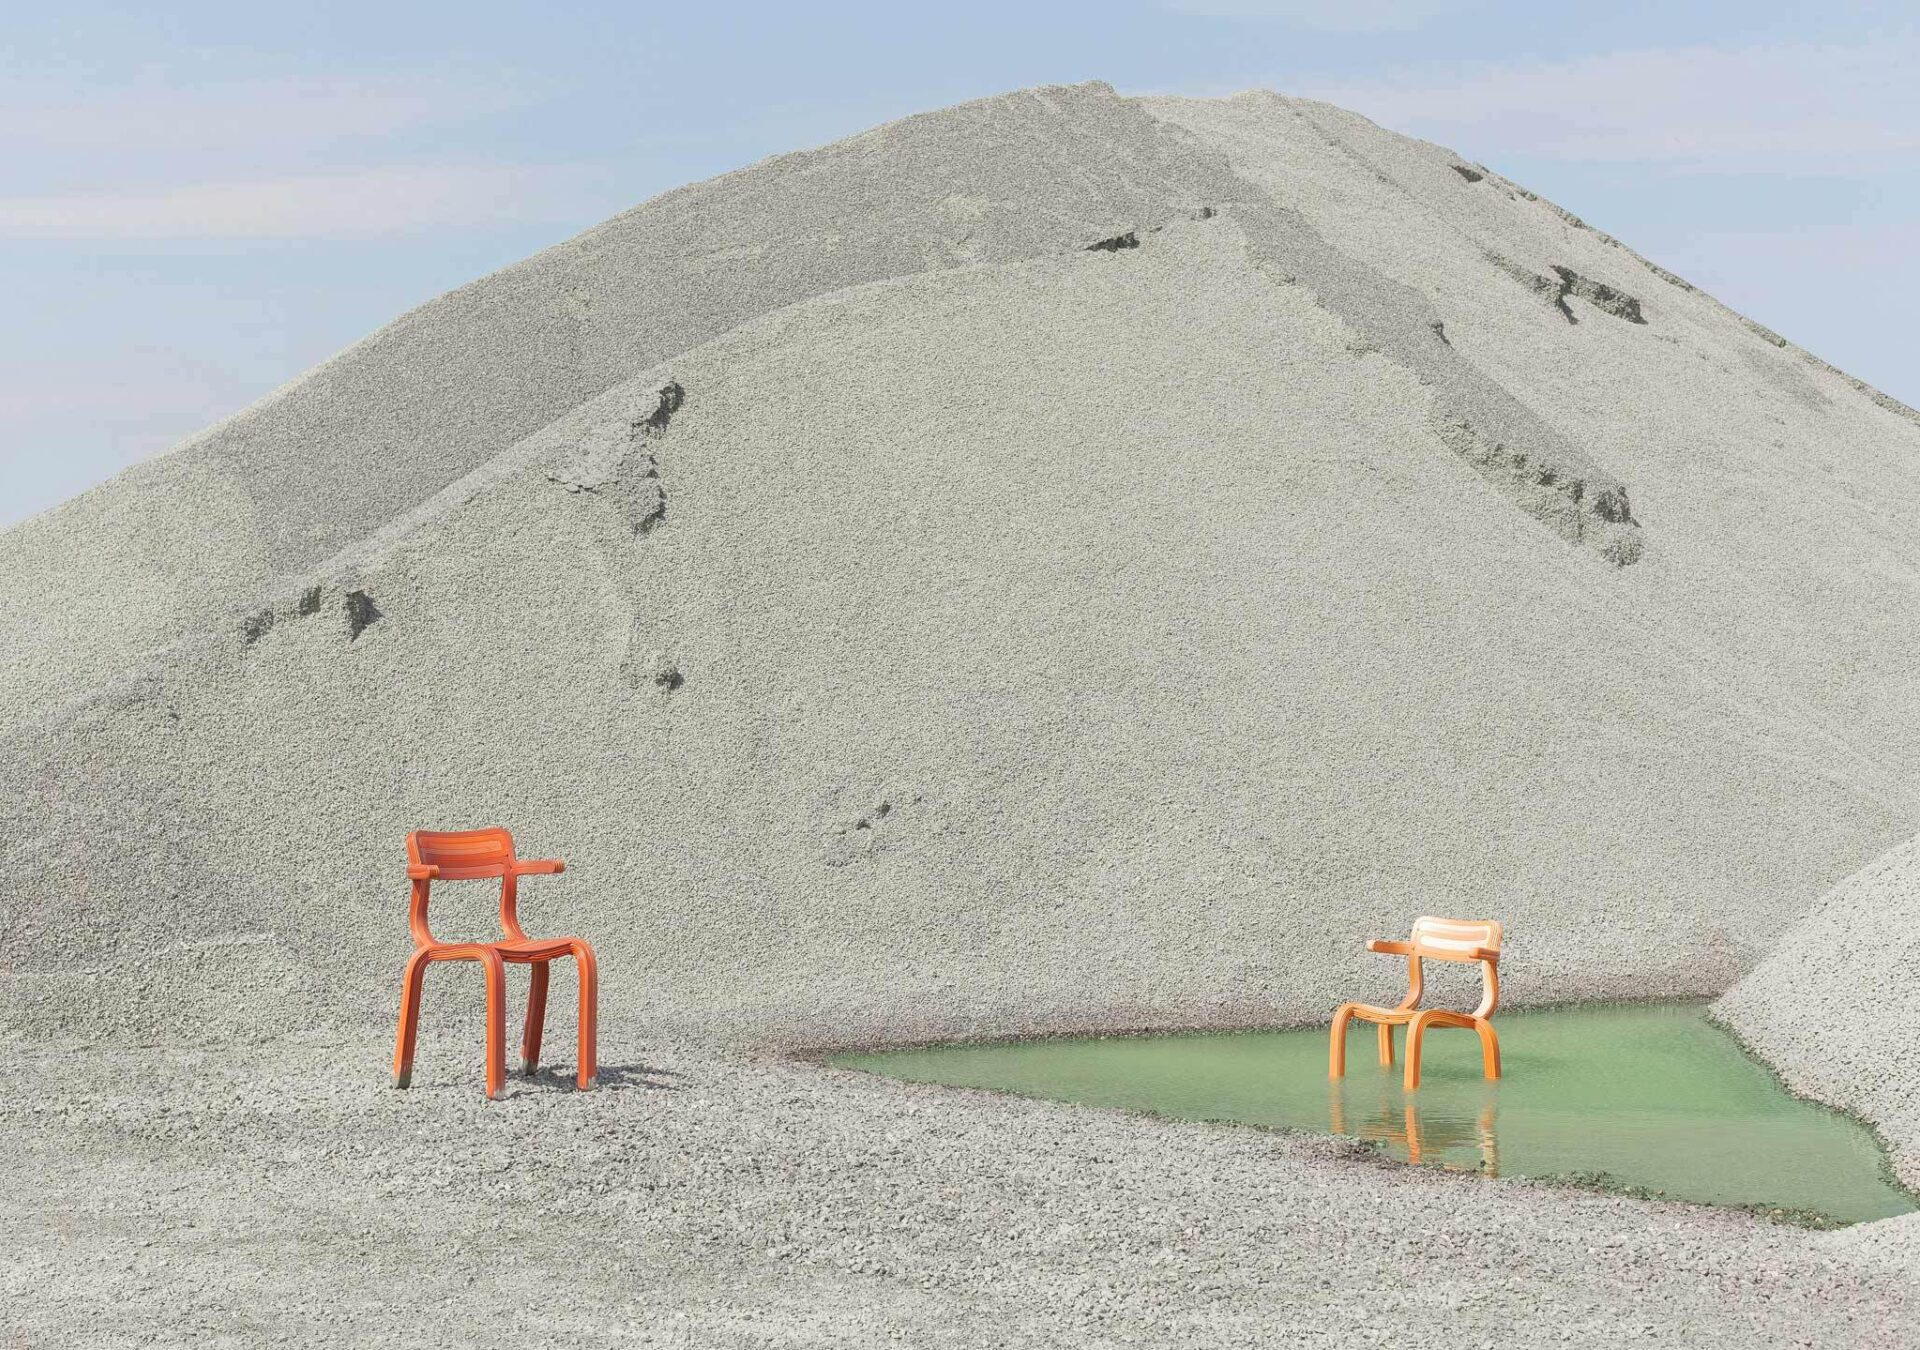 Kooij RVR chairs in sand recycled plastic